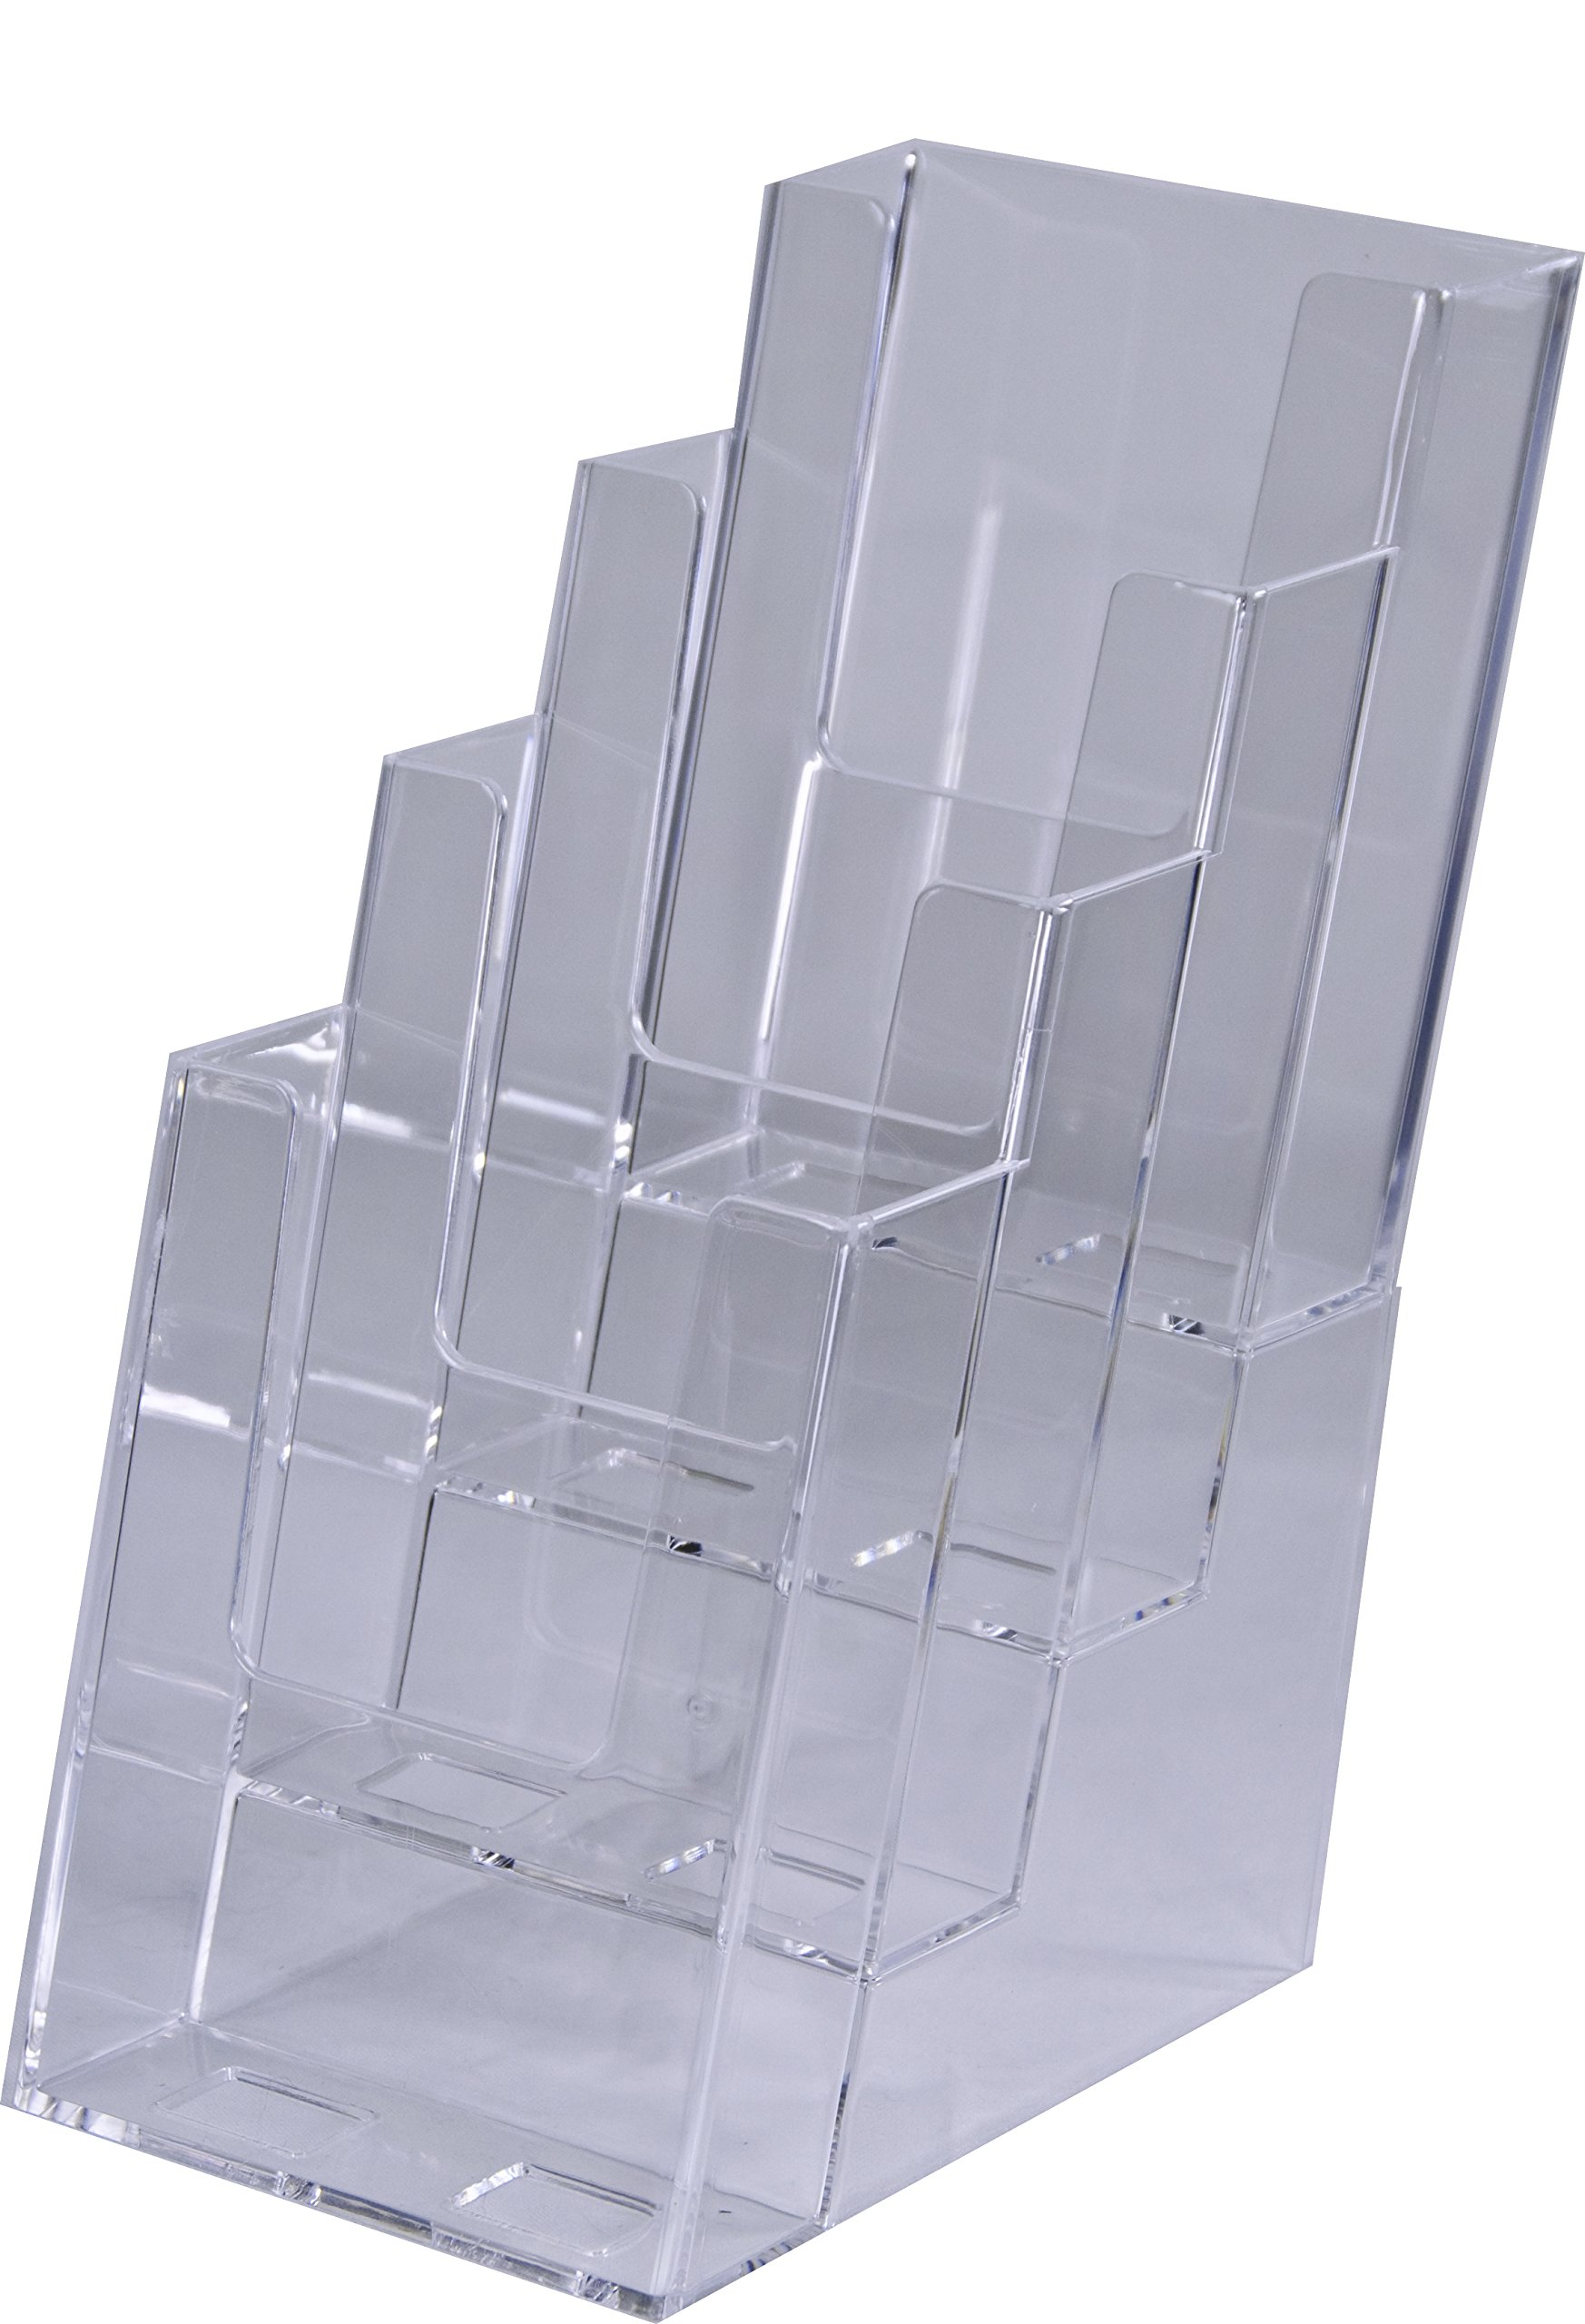 Clear-Ad - LHF-S104 - Acrylic Slant Back 4 Tier Trifold Brochure Display - Plastic Literature Holder for Flyers, Booklets, Bills, Mail, Letters, Cards, Pamphlets, Maps (Pack of 4) by Clear-Ad (Image #3)